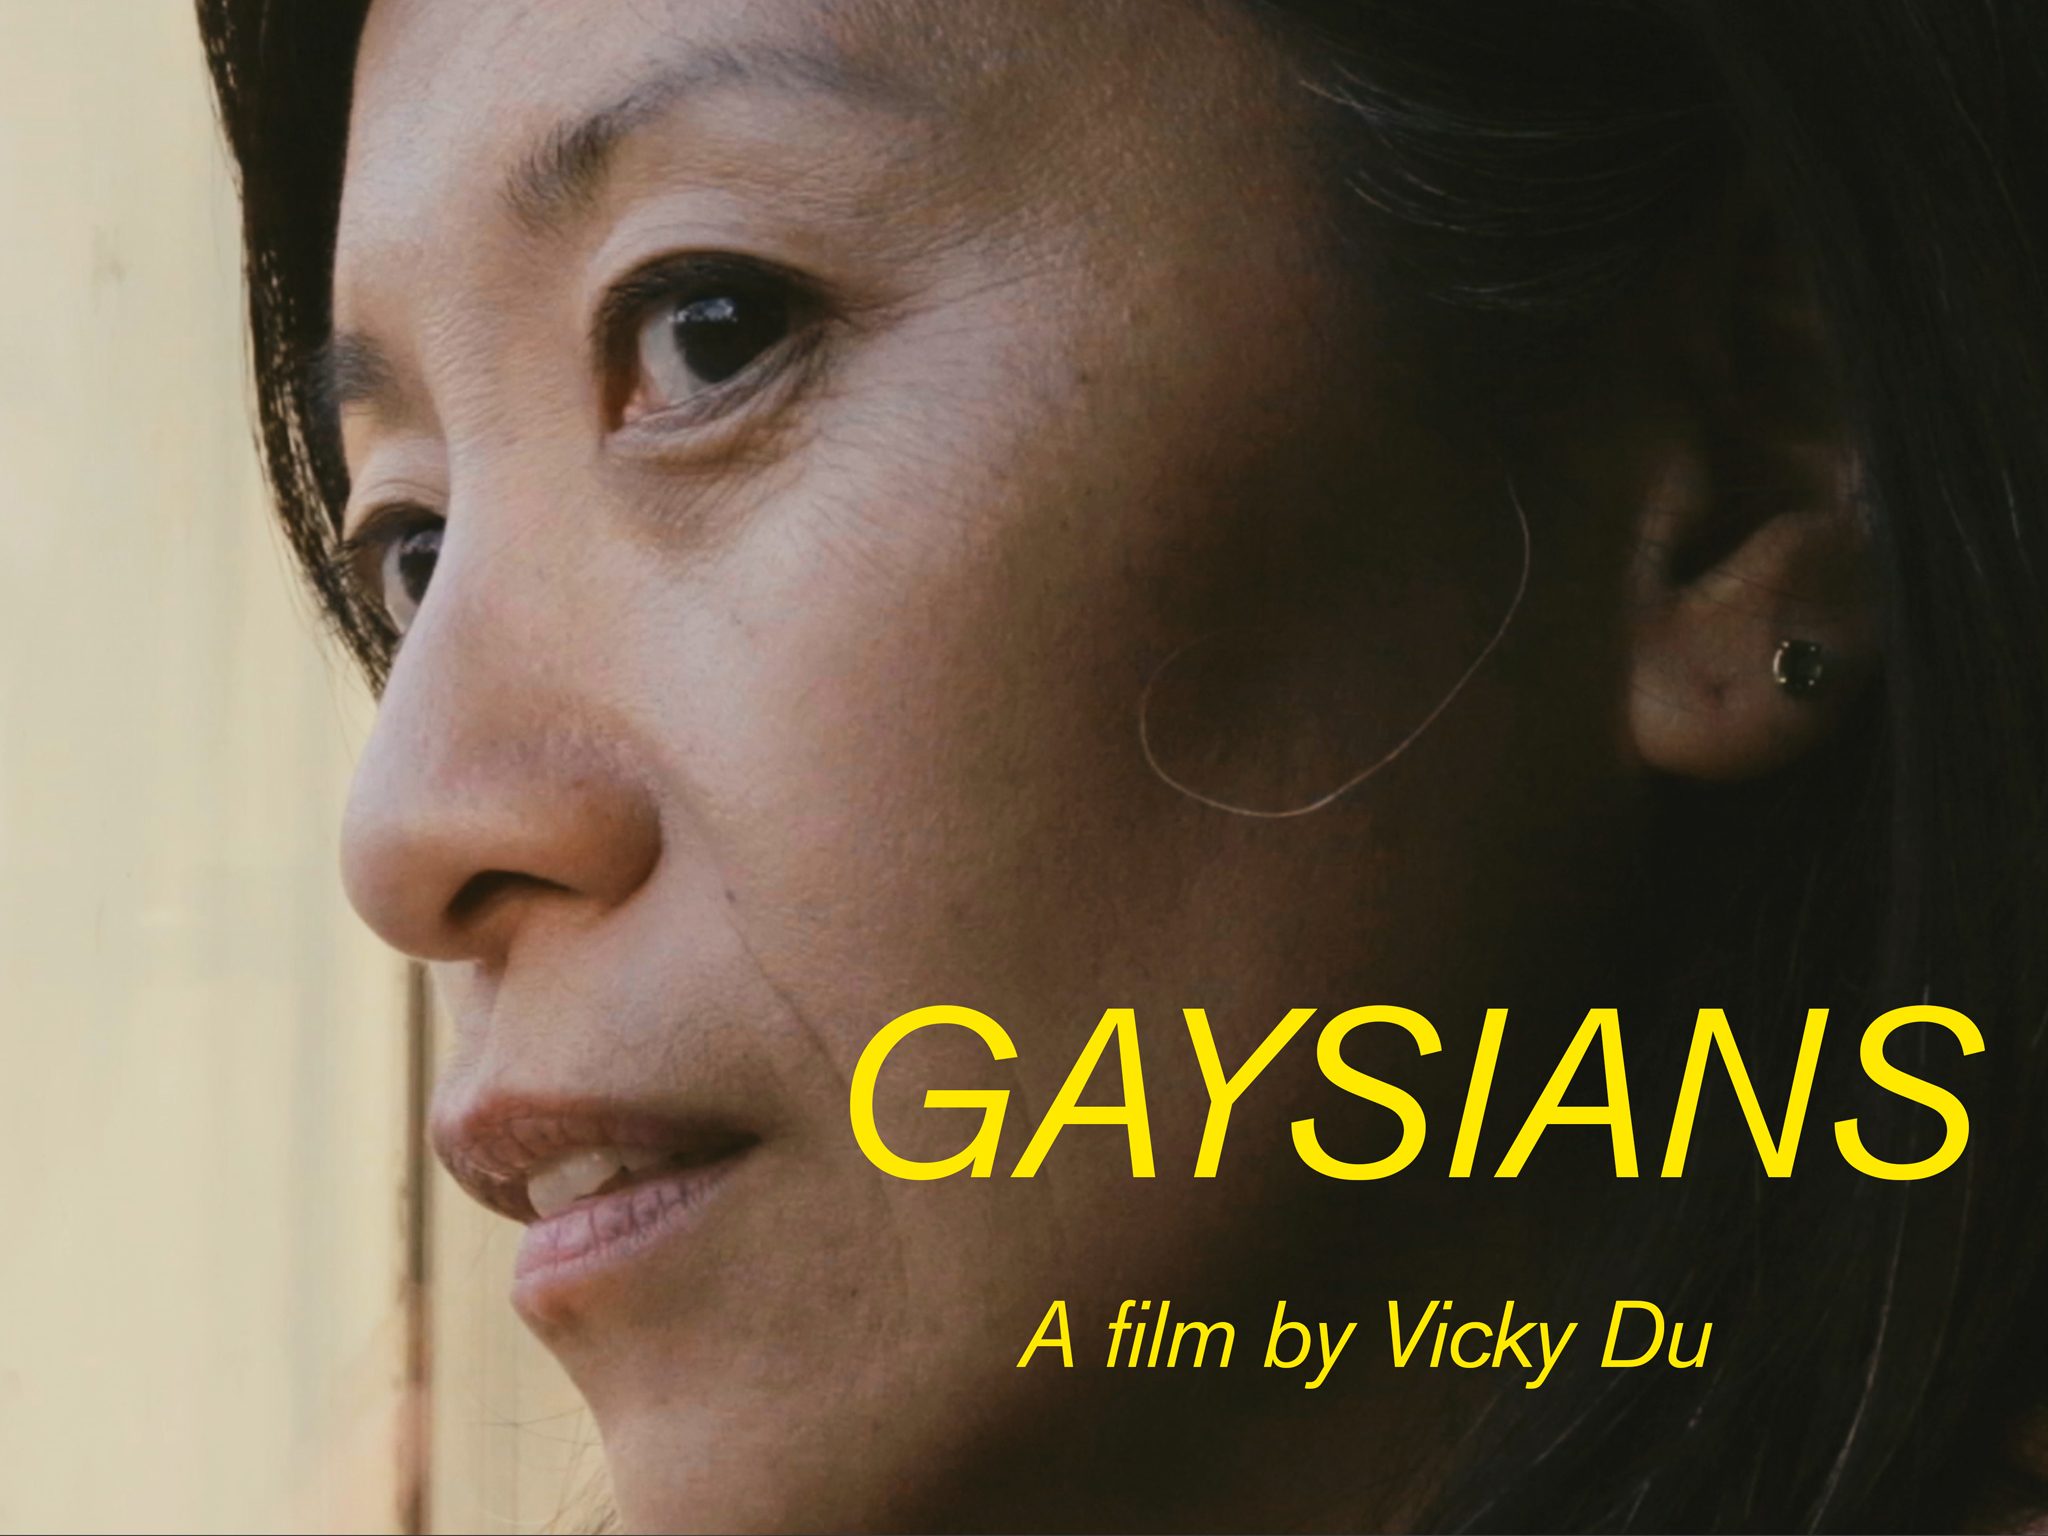 Gay and transgender Asian Americans in New York explore their relationships with family and culture. Directed by Vicky Du.